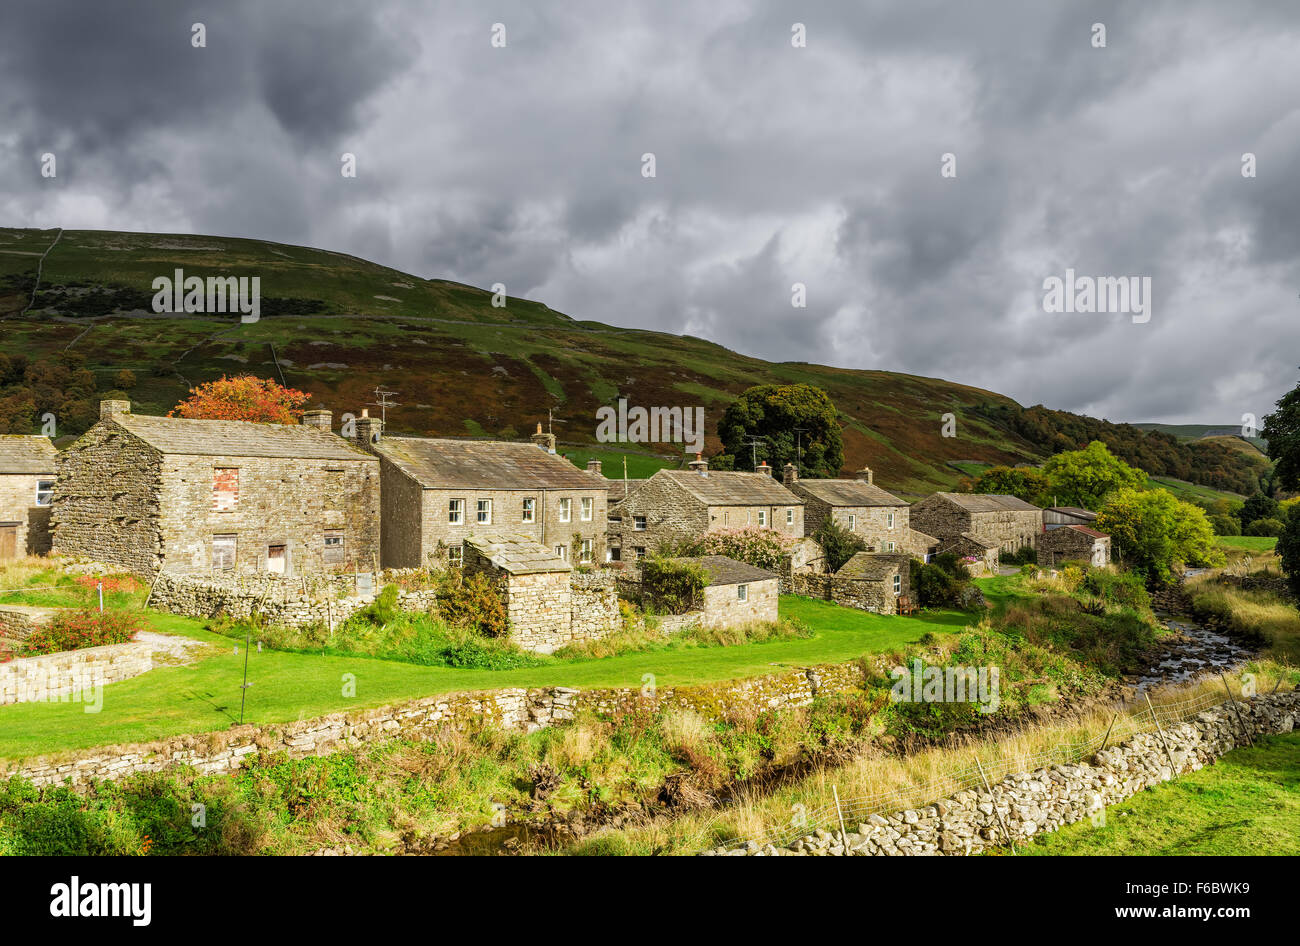 Stone cottages in Thwaite, England - Stock Image